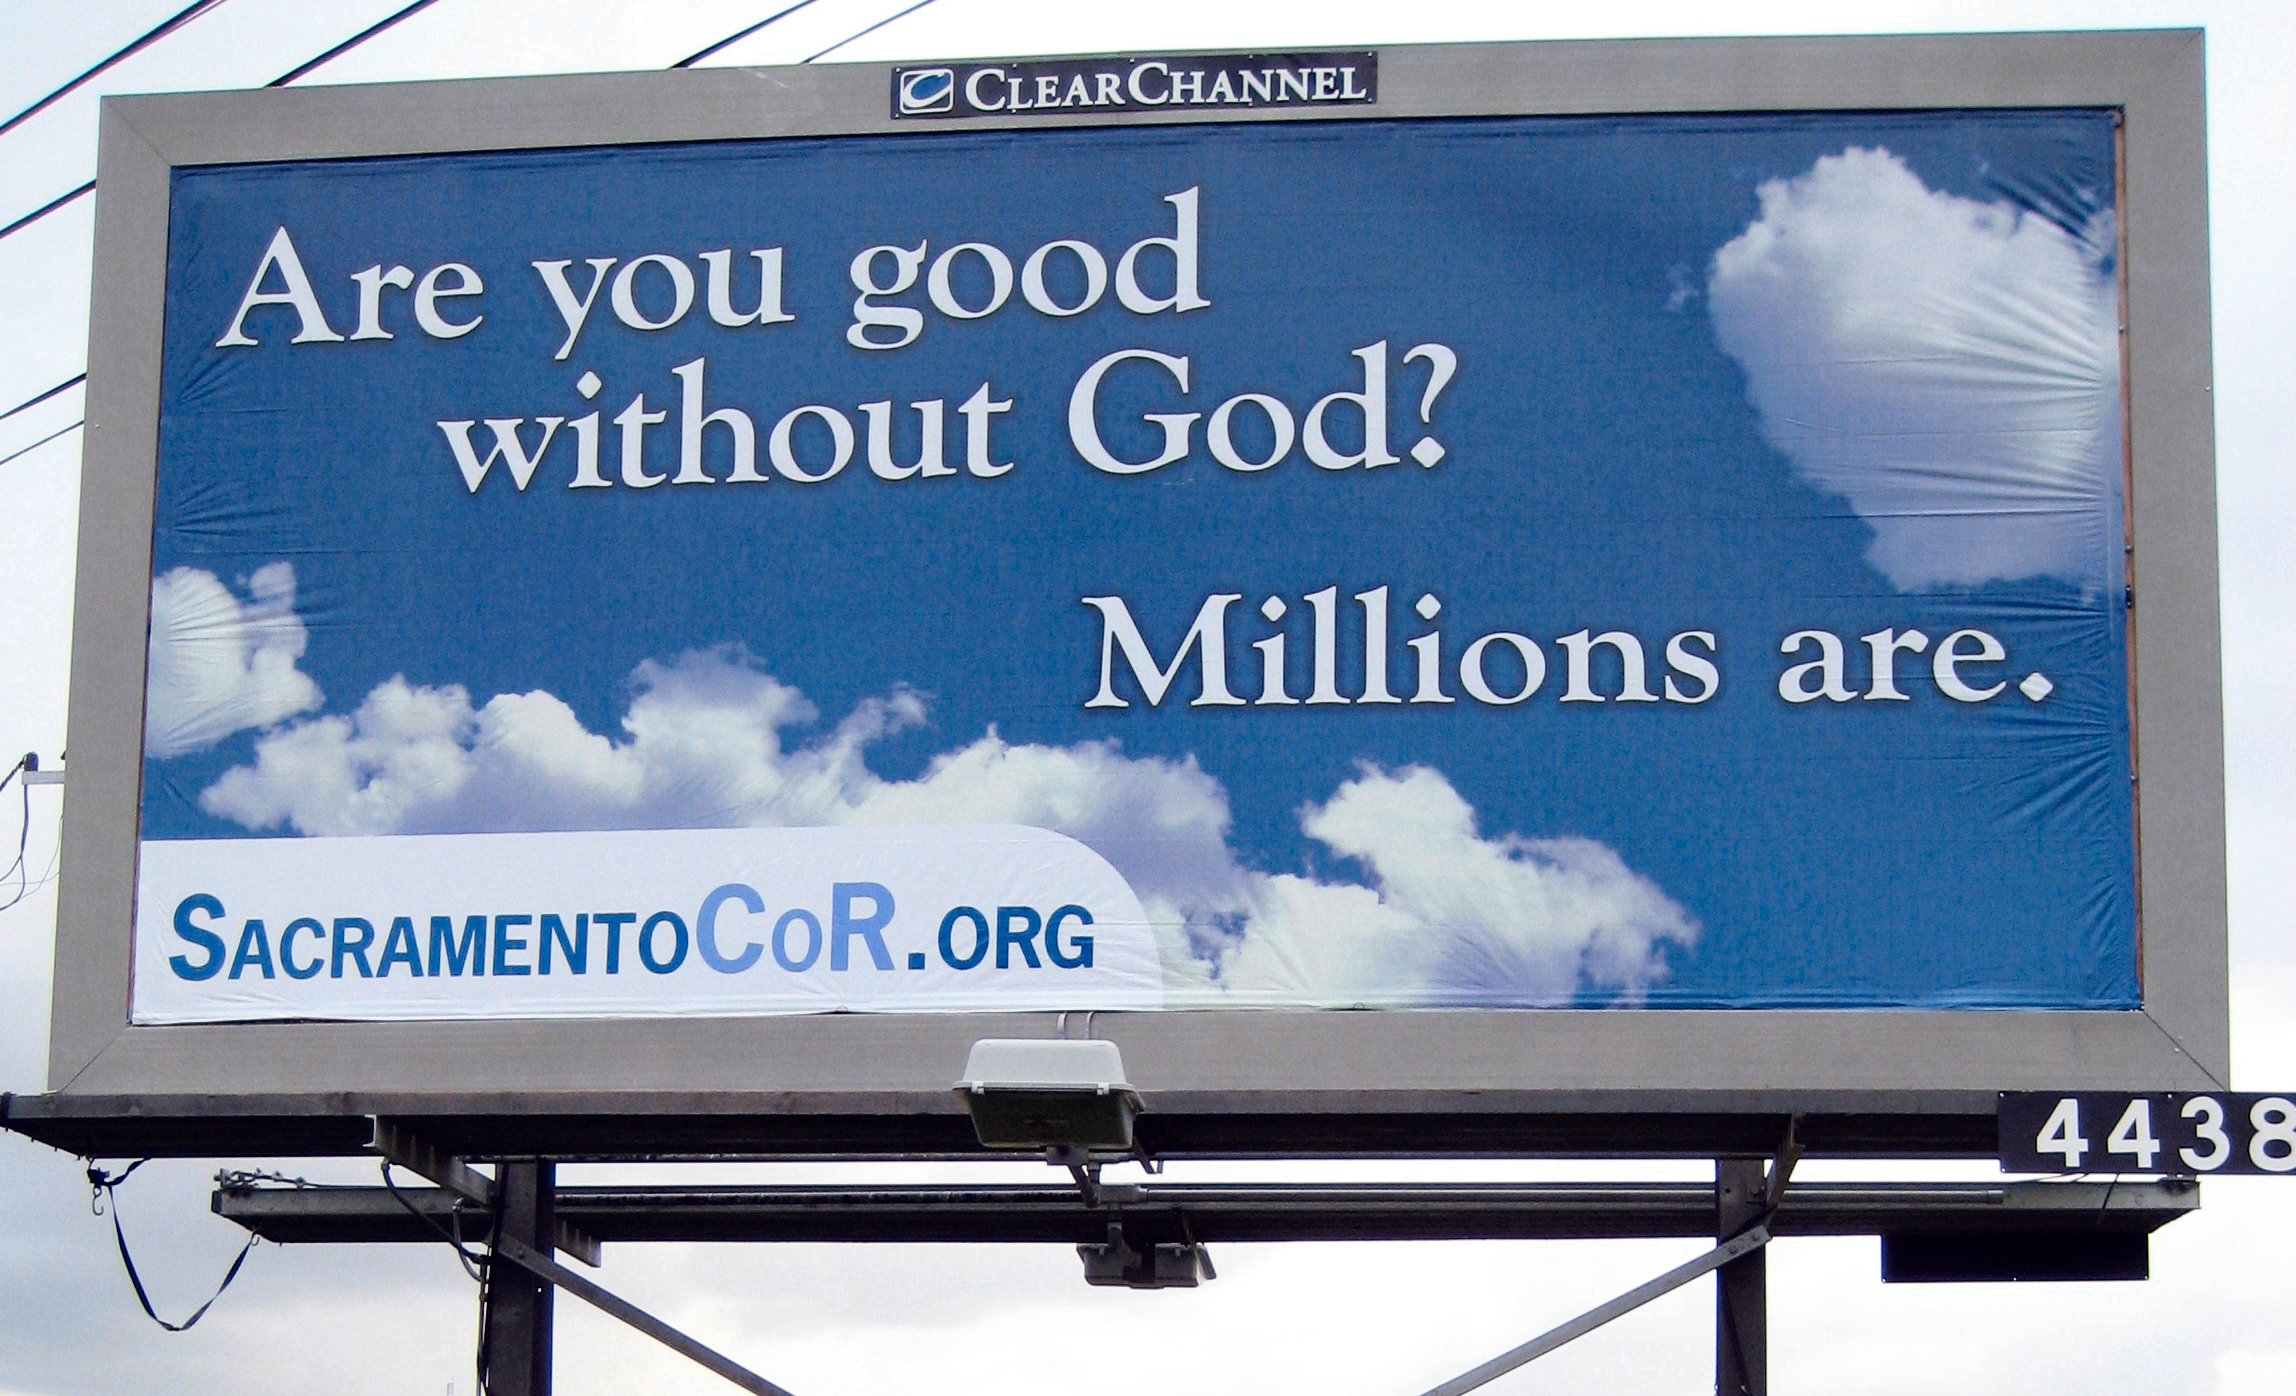 More Atheist Billboard Vandalization